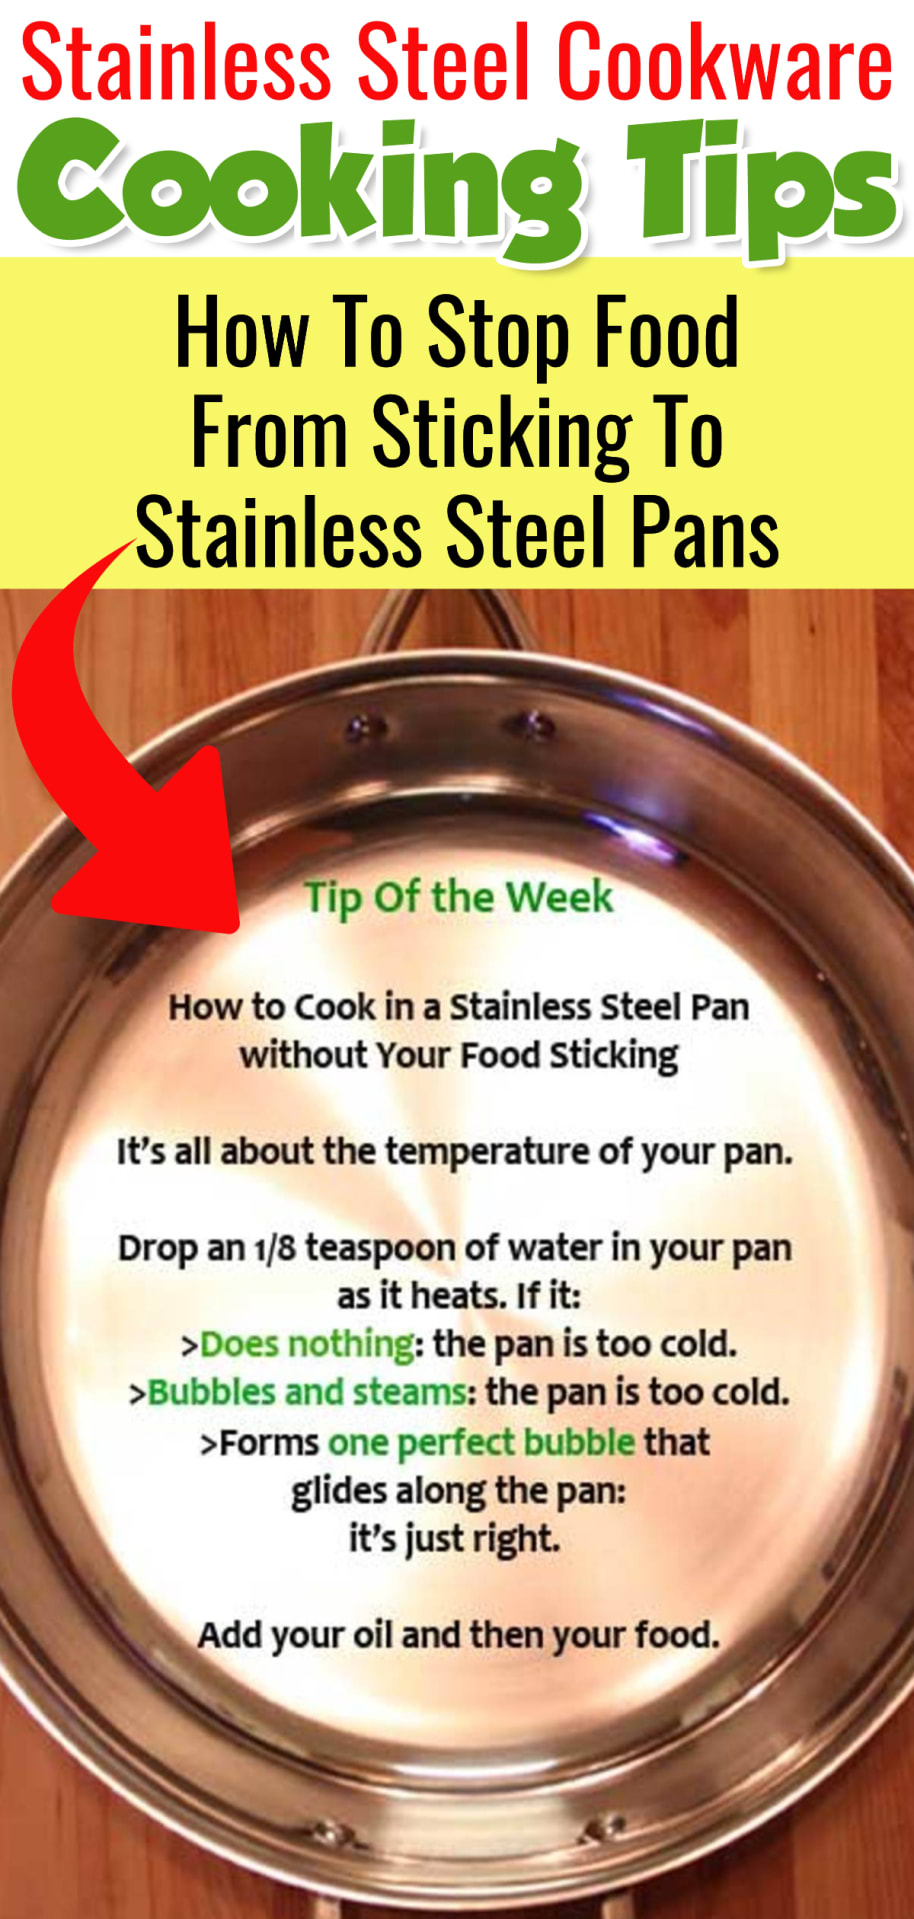 Stainless steel cookware cooking tips - how to cook with stainless steel pans tips - how to stop stainless steel pans sticking - cooking videos for beginners - cooking tips and tricks - easy breakfast recipes and easy omelette recipes - how to make an omelette videos